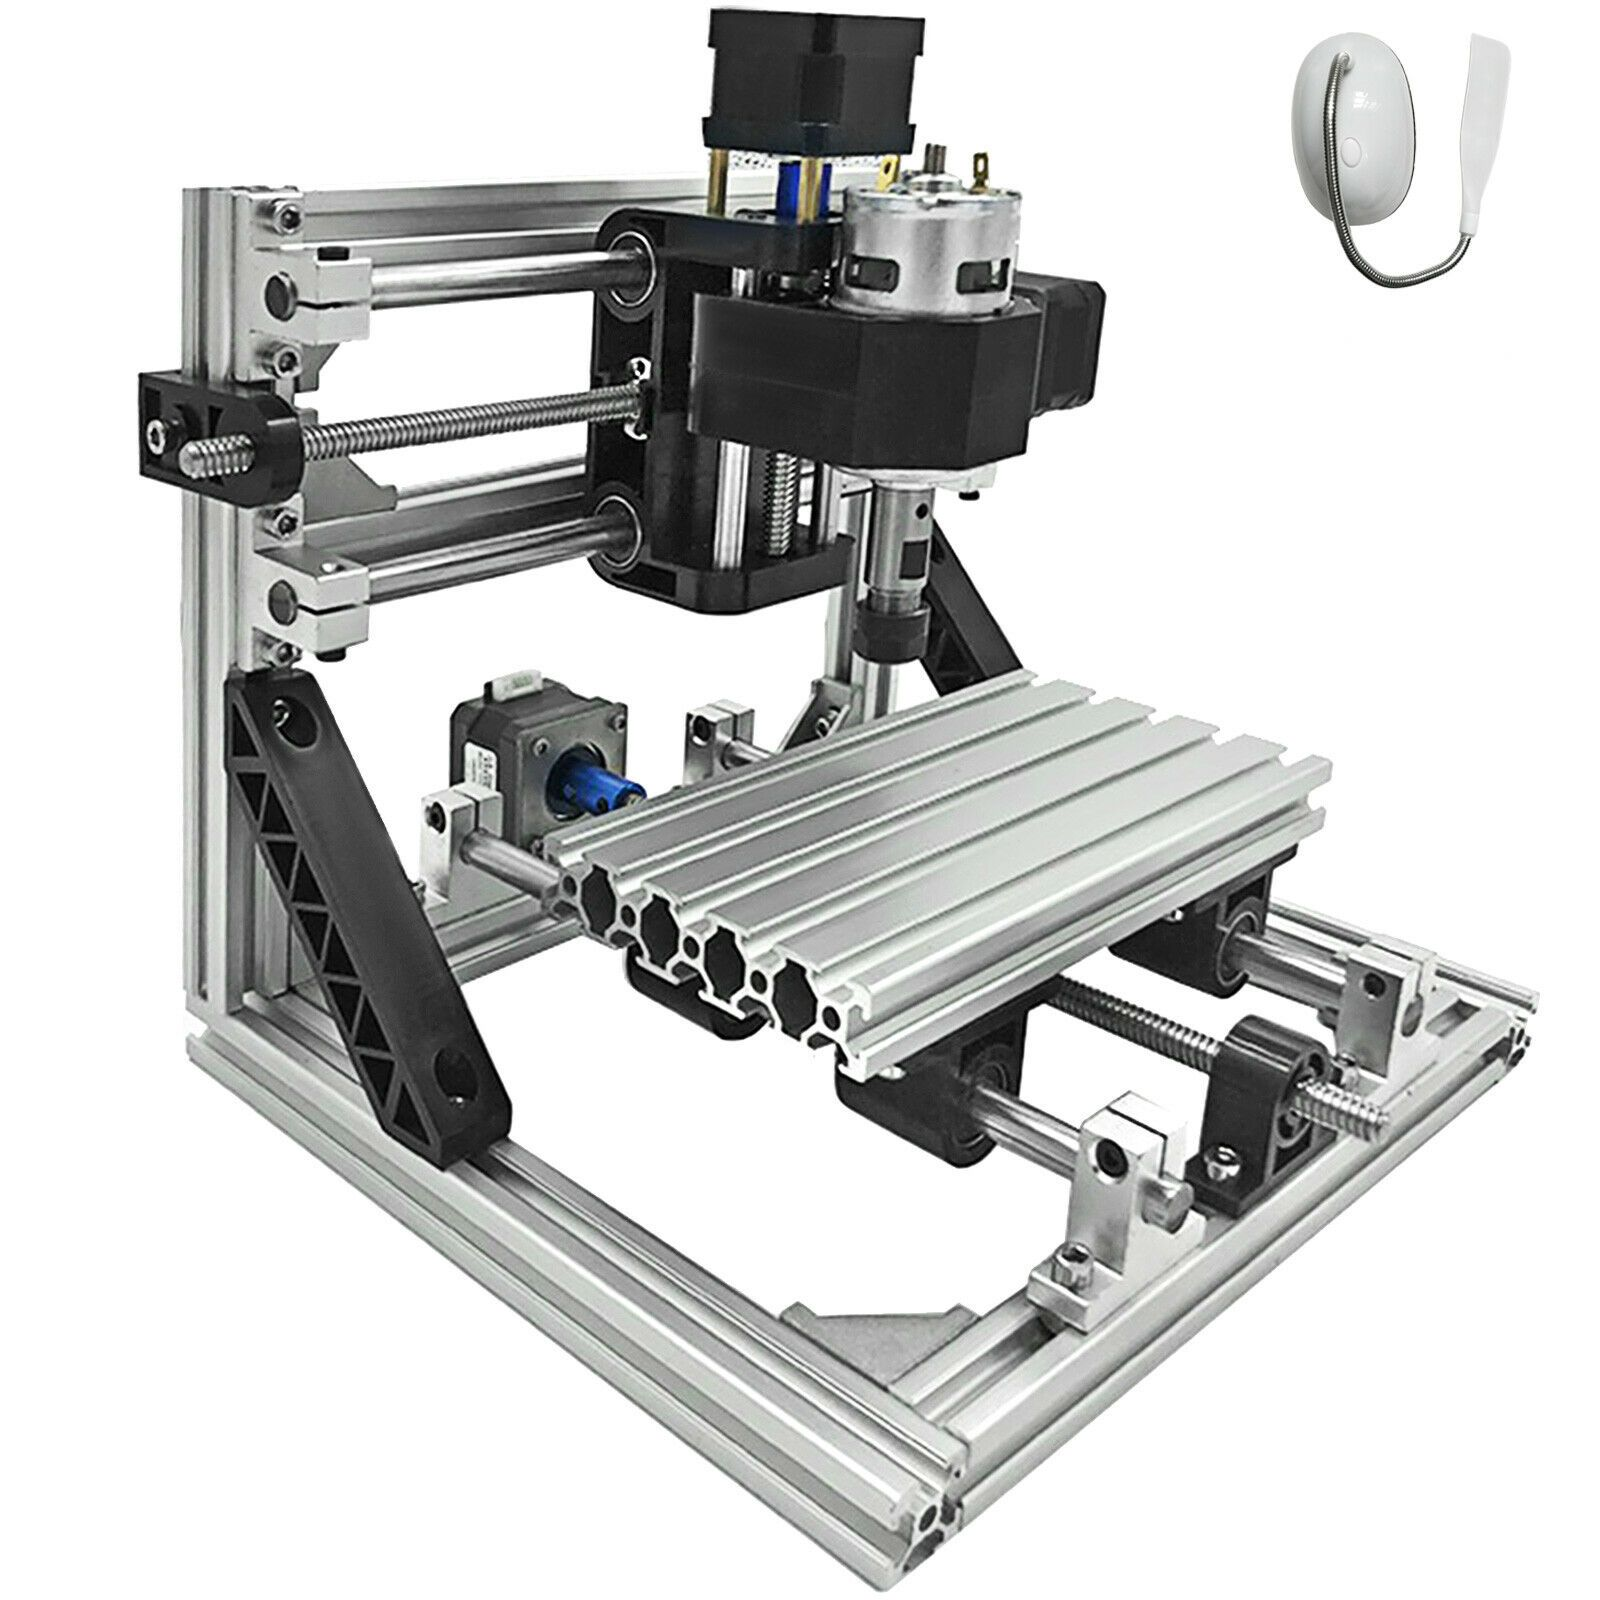 Cnc Kit 3 Axis in 2020 Cnc engraving machine, Cnc router